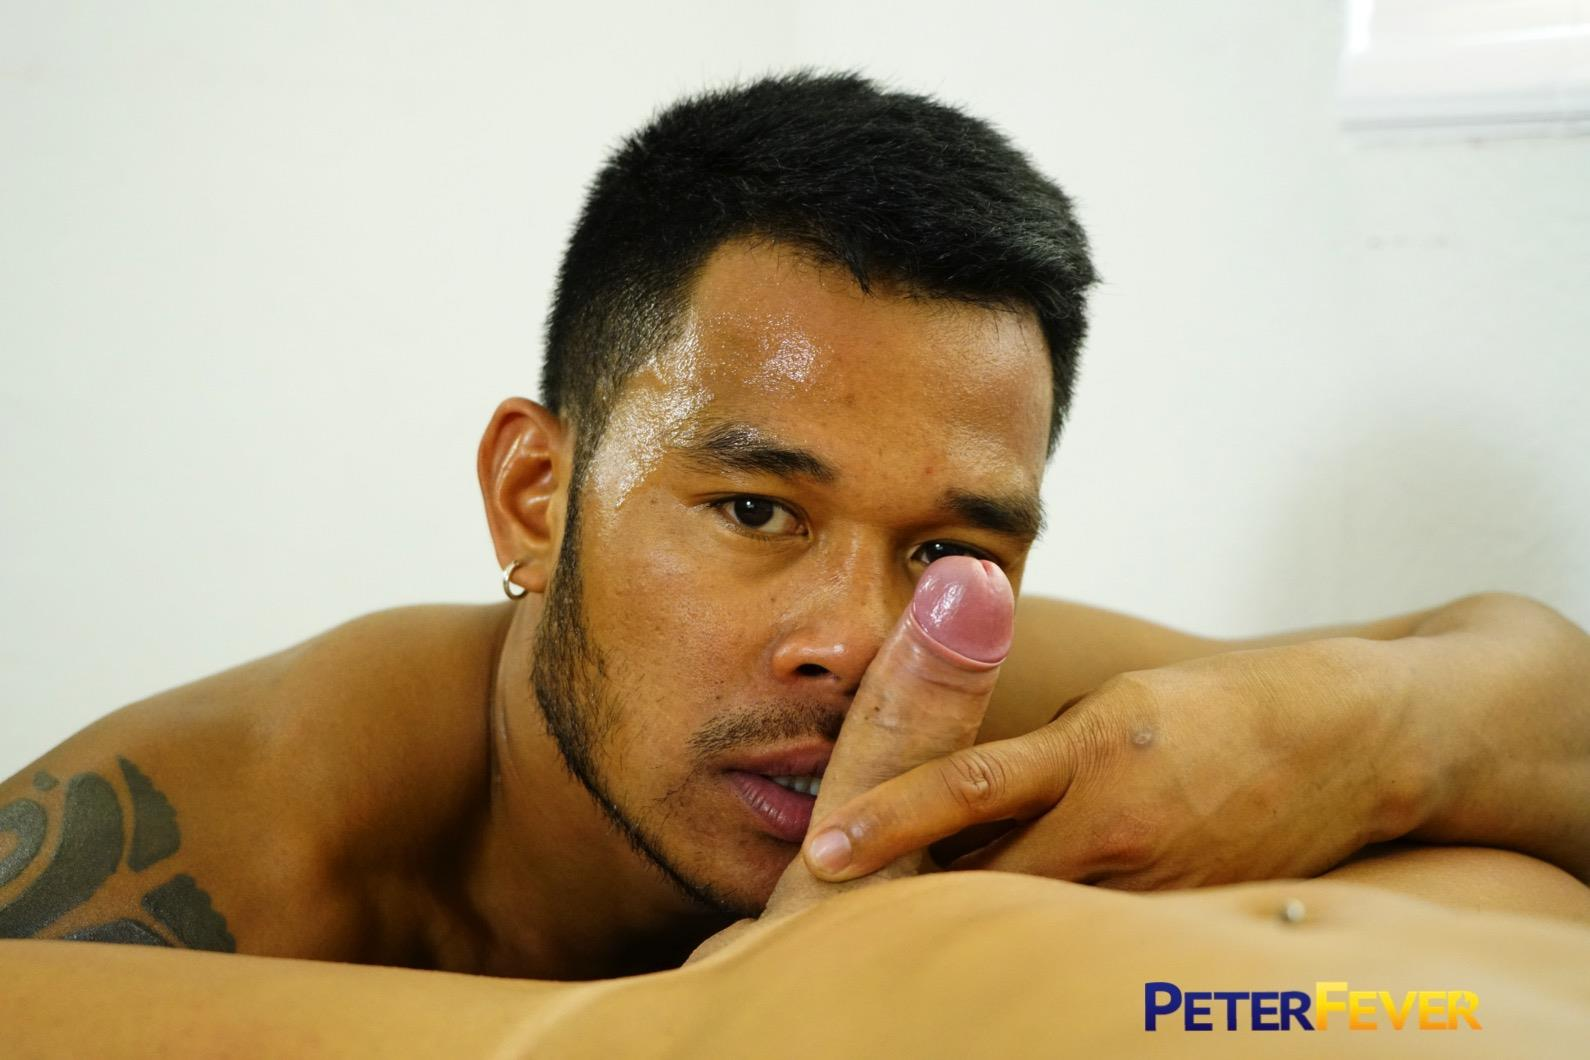 Peter-Fever-Shen-Powers-and-Trevor-Northman-Big-Asian-Dicks-Fucking-06 Horny Asian Guys Tickle, Suck And Fuck Each Other Silly